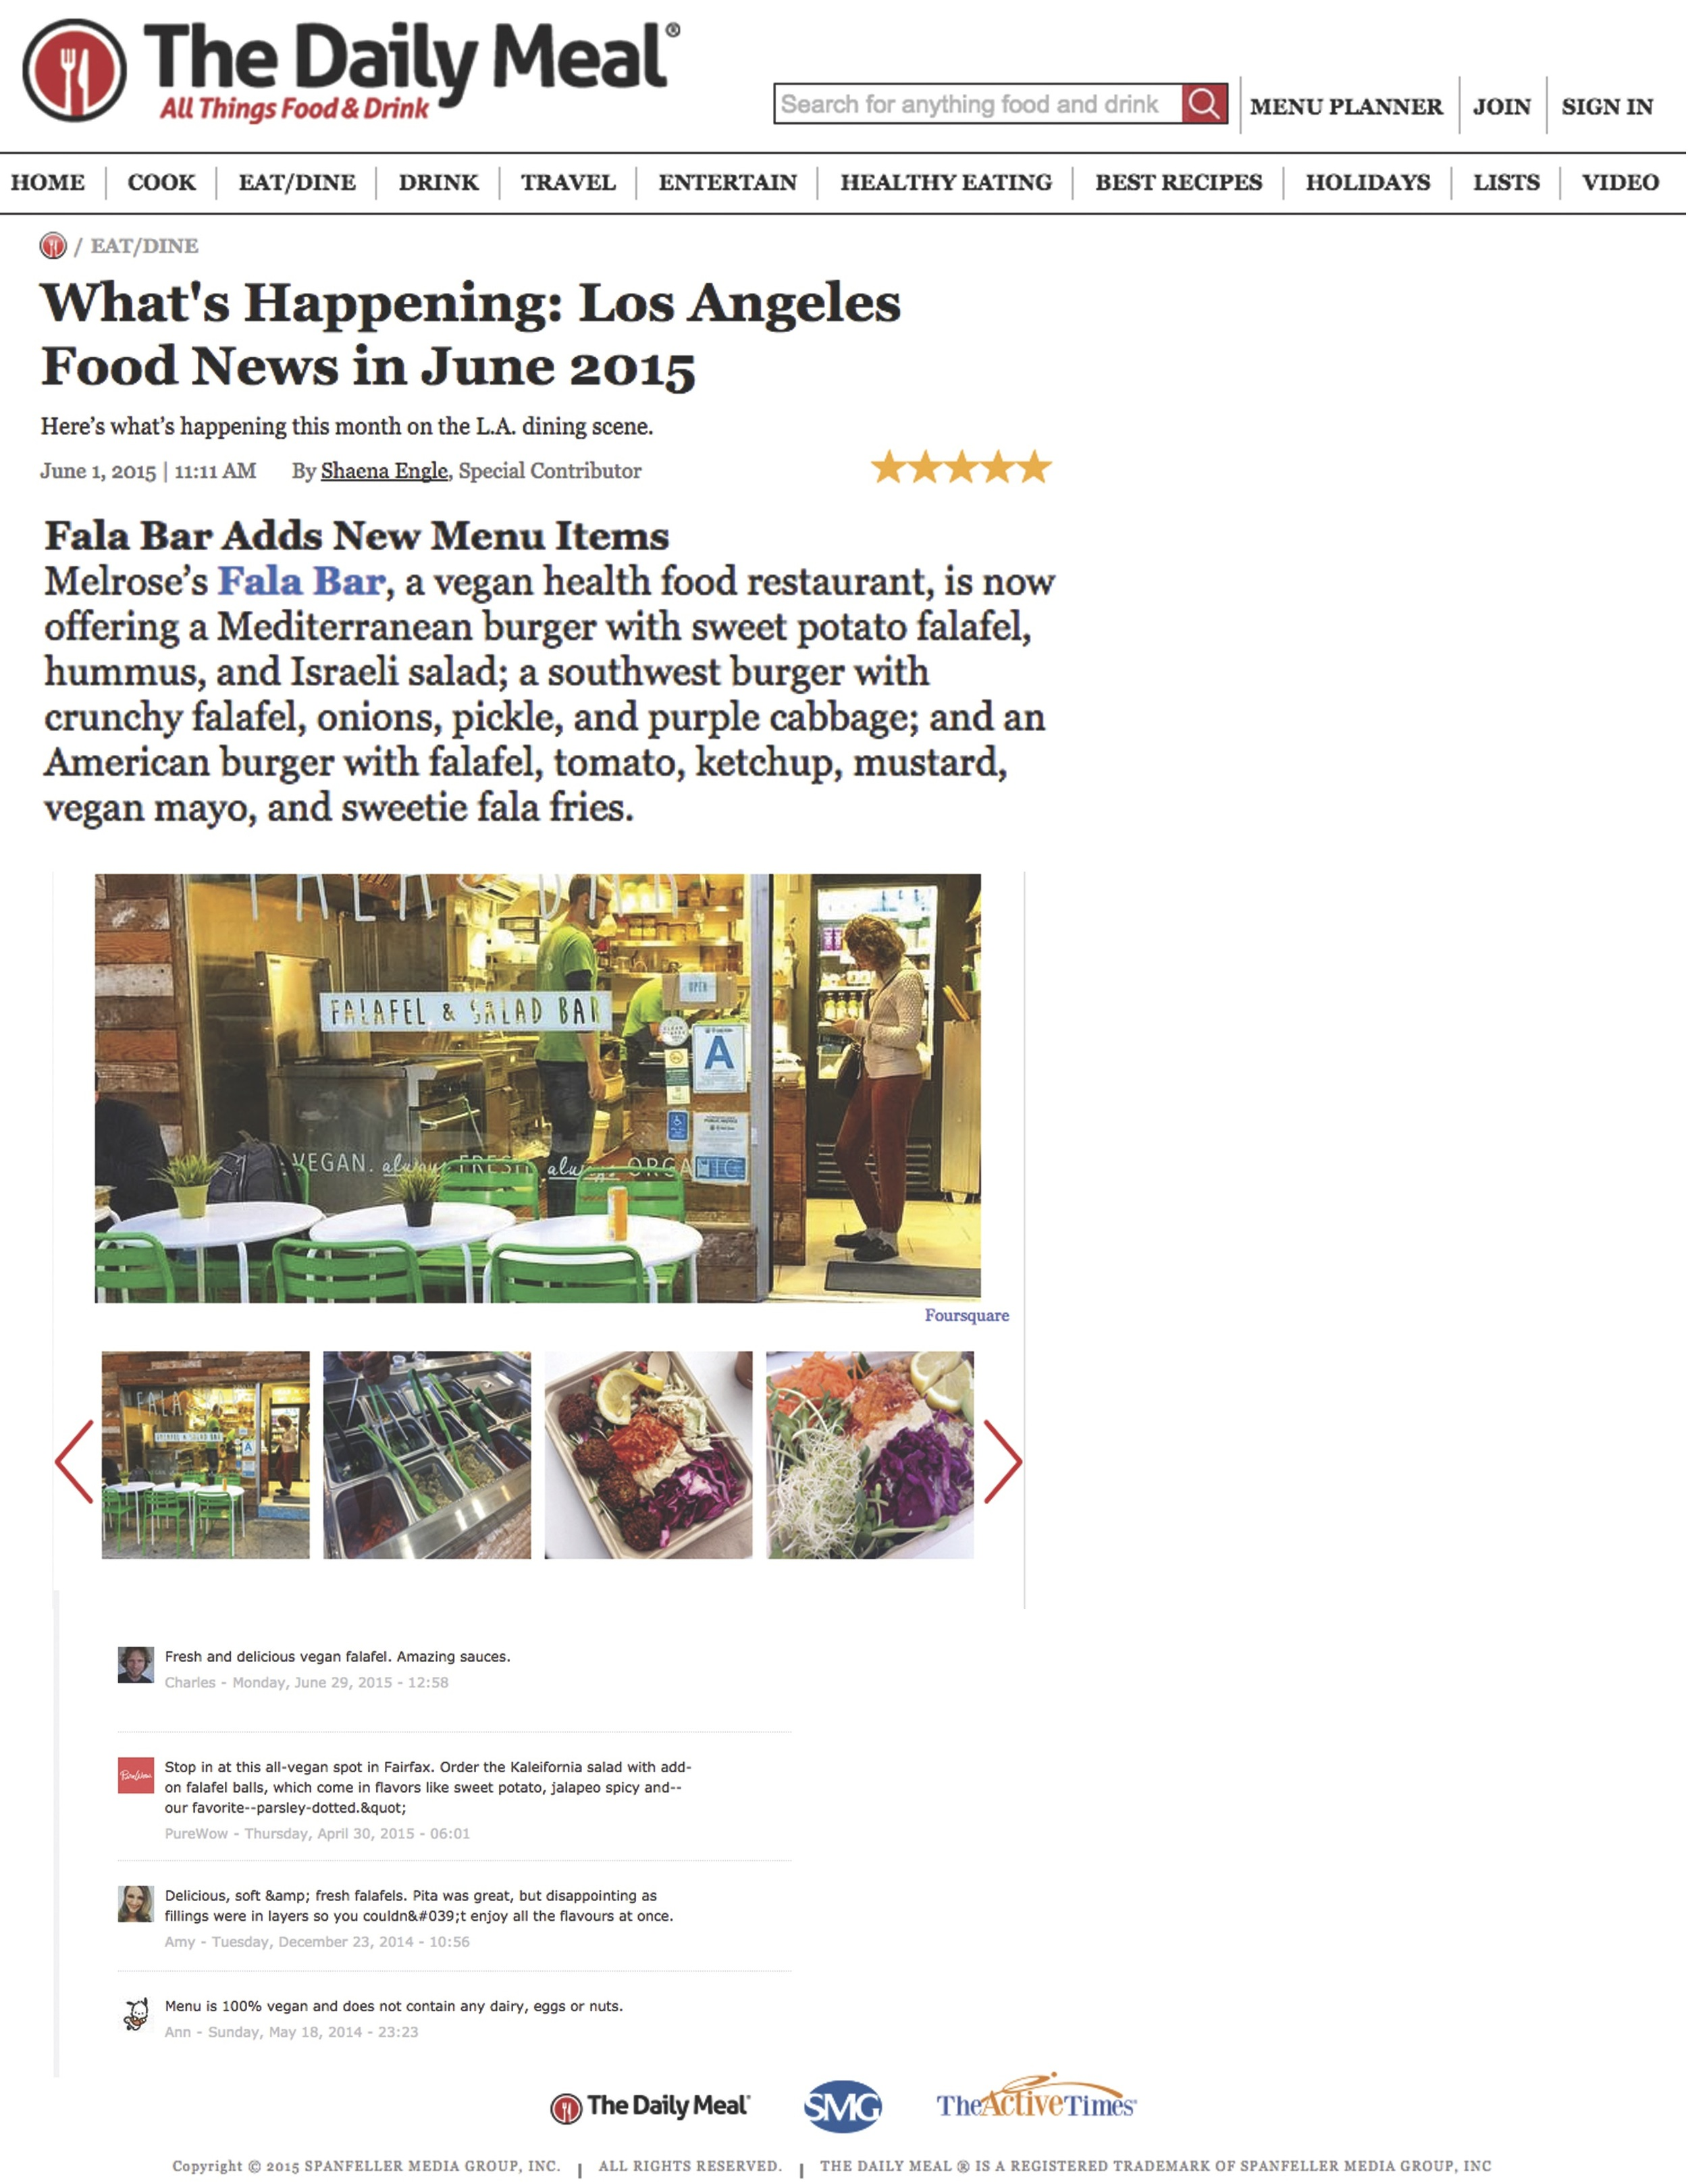 Report about Fala Bar / The Daily Meal